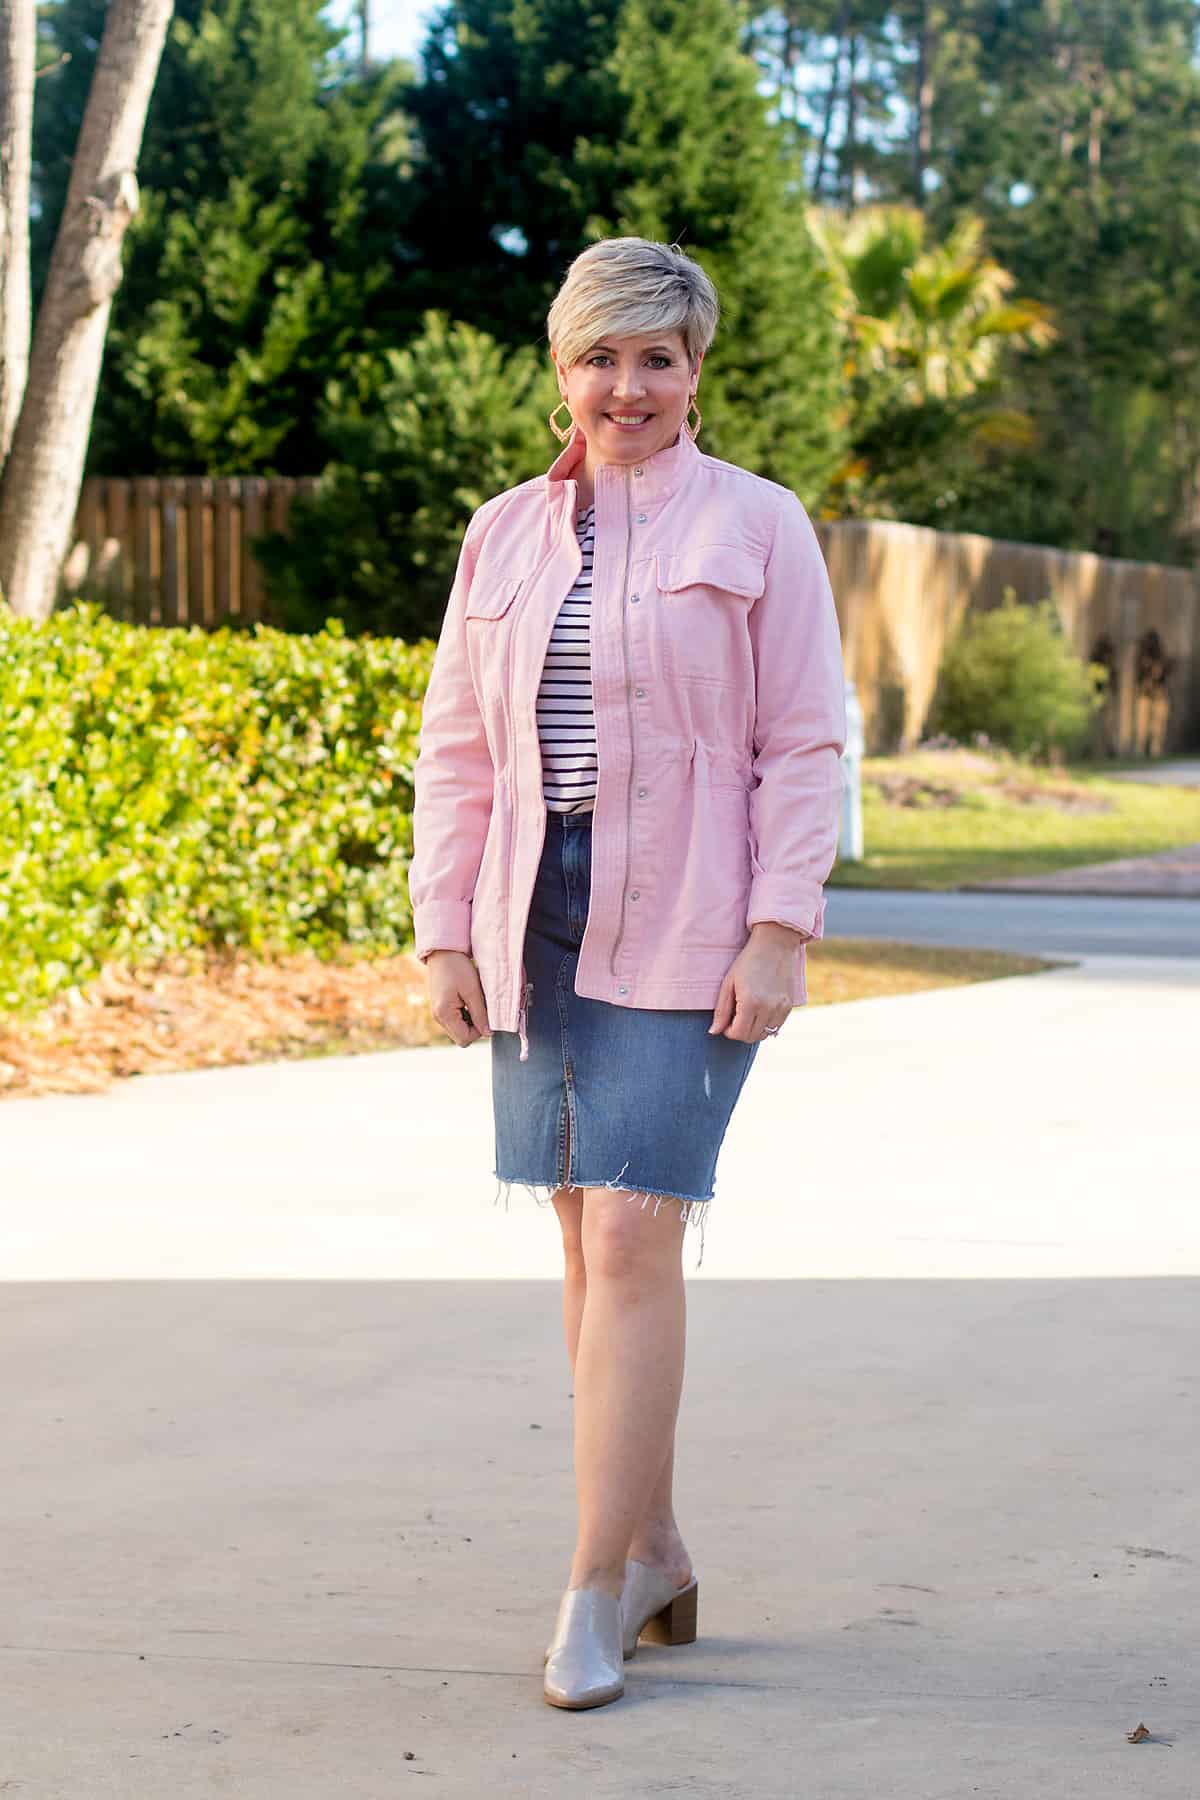 women's denim skirt outfit with utility jacket